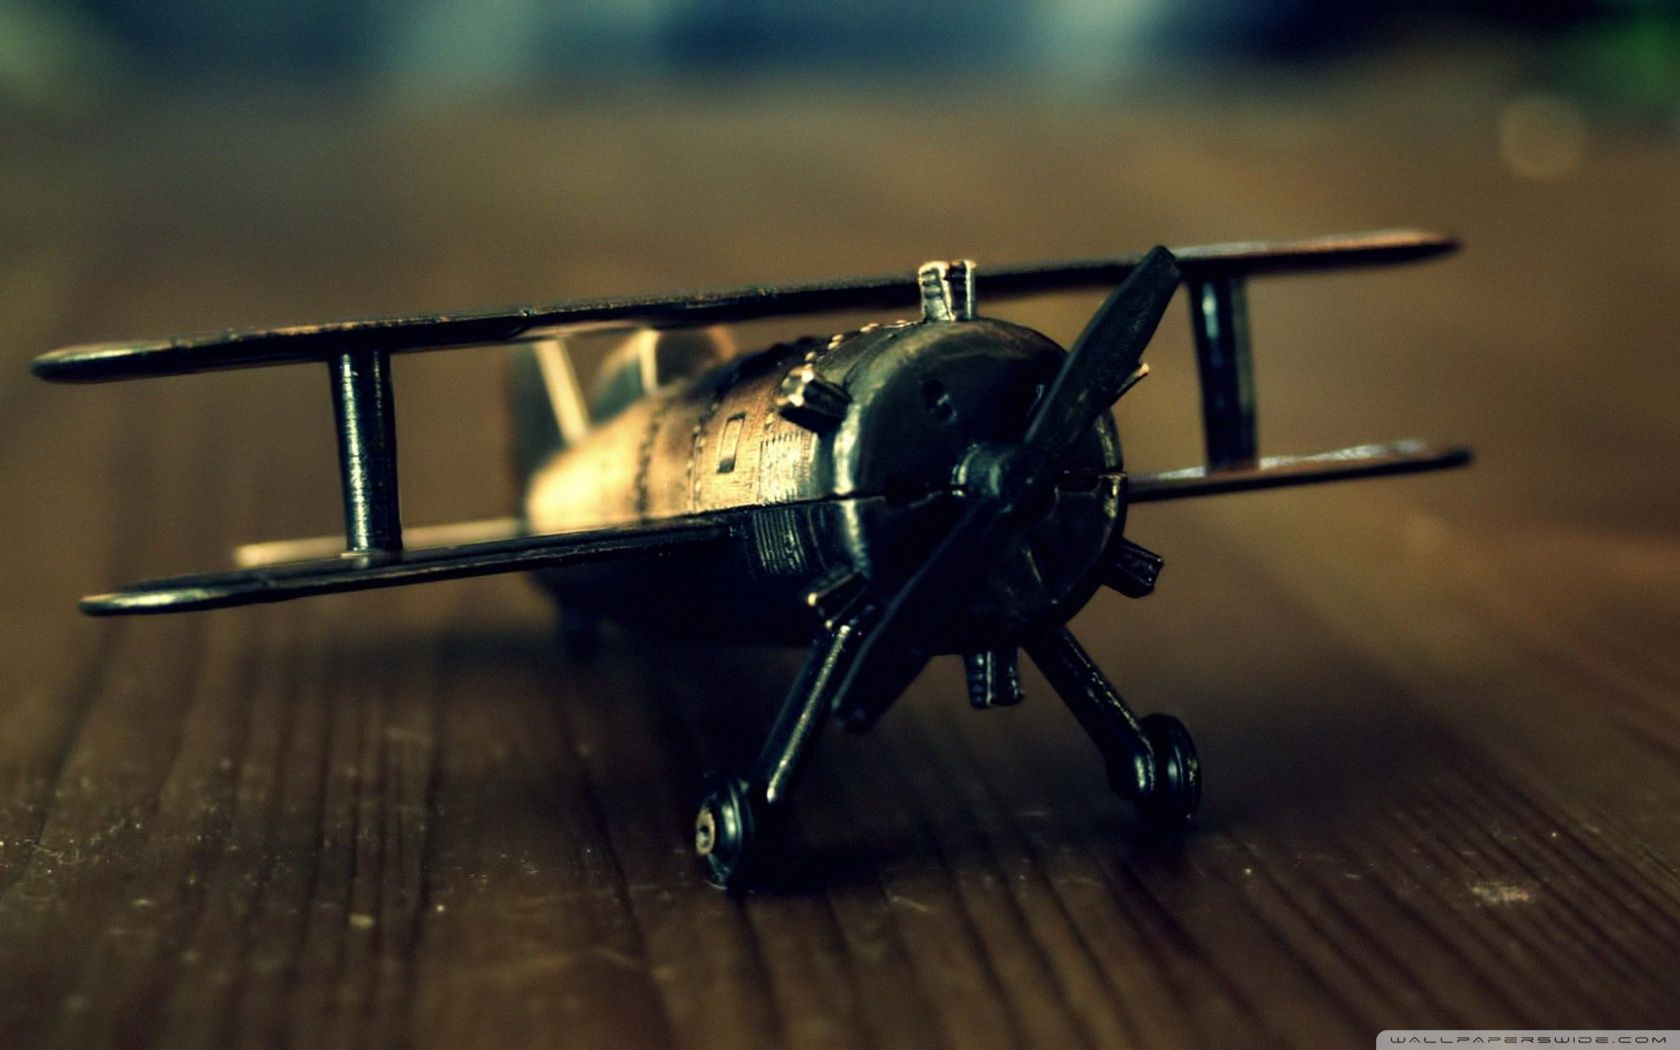 Airplane Wallpaper Hd Airplane Hd Photos And Pictures Rt Airplane Wallpaper Vintage Desktop Wallpapers Background Vintage